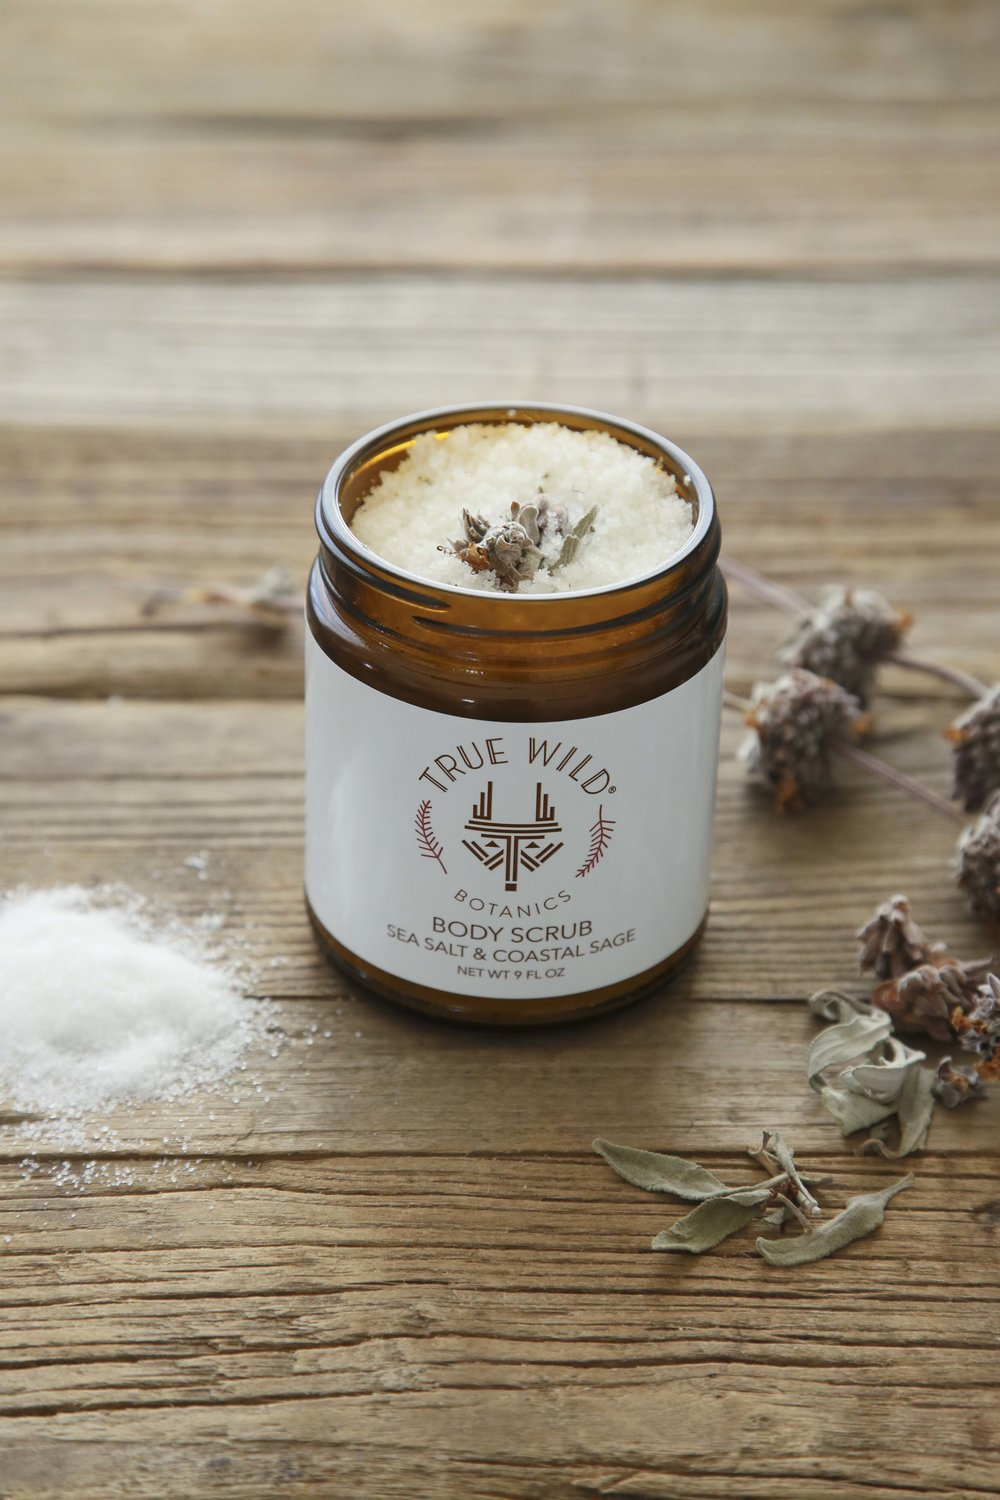 True Wild Botanics Sea Salt & Coastal Sage Body Scrub  incorporates California native sages with mineral-packed Dead Sea salts to detoxify, nourish, and restore balance to the skin. These powerful healing agents are combined for a simple way to replenish, exfoliate, and rejuvenate skin.